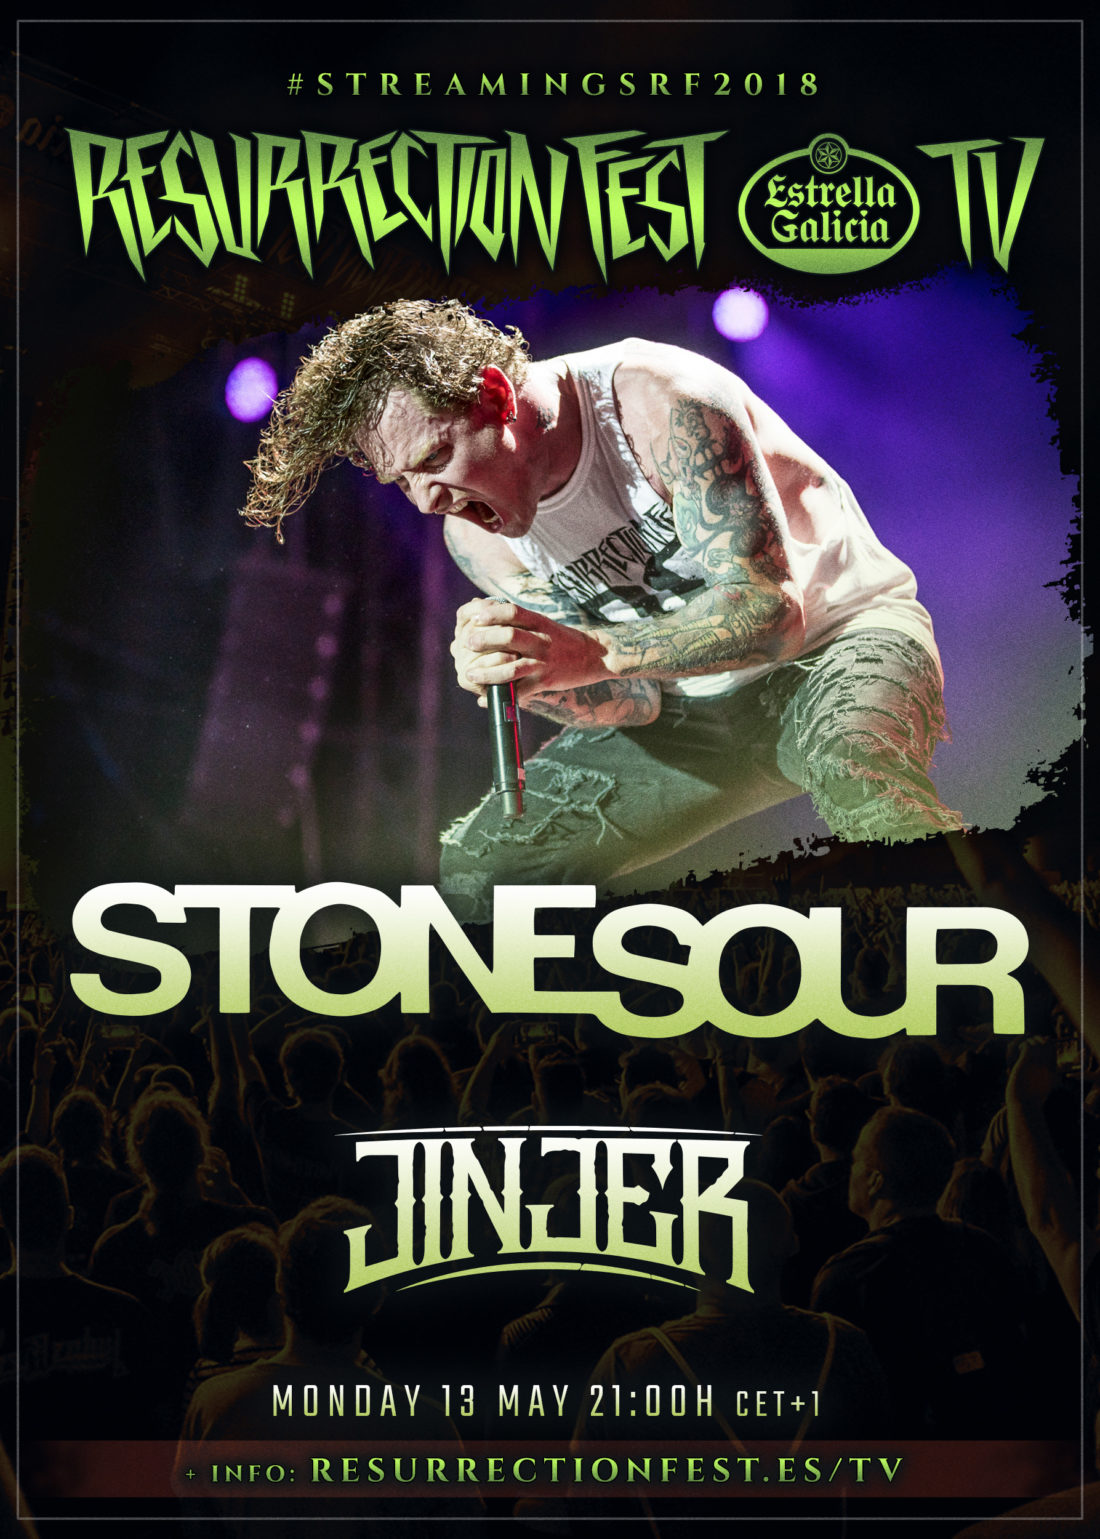 RESURRECTION FEST 2019 - Página 6 RF19-Streamings-Stonesour-Jinjer-poster-1100x1539